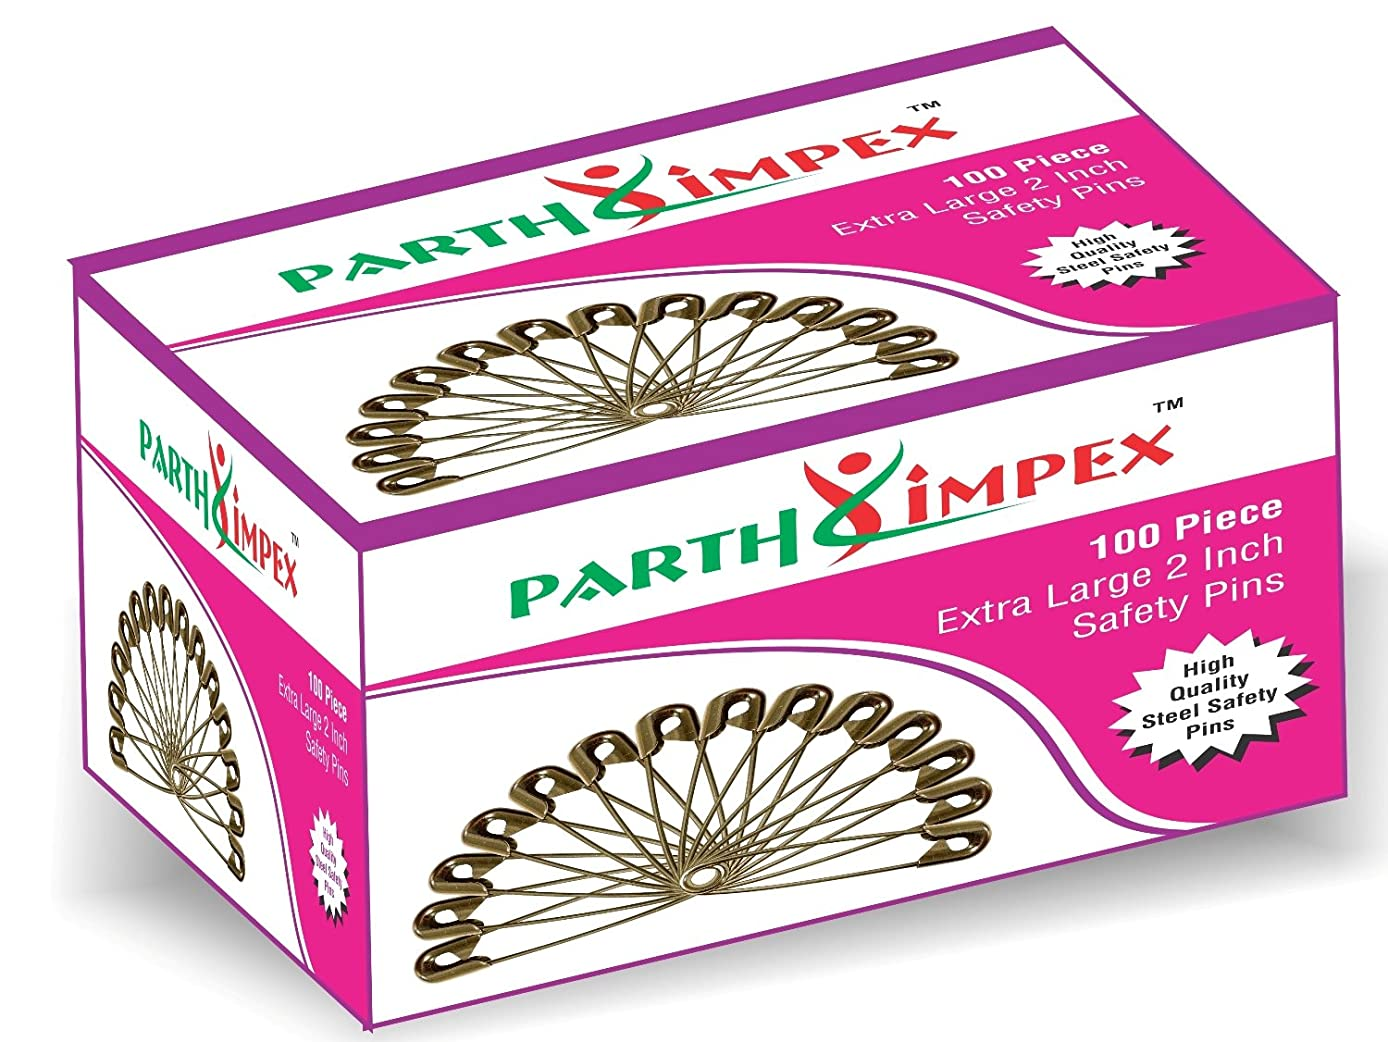 PARTH IMPEX 100 Extra Large Sturdy Safety Pins 2 Inches / 50 mm Sewing Craft Pin Needles (Pack of 100 Pin) Nickel Steel Polished